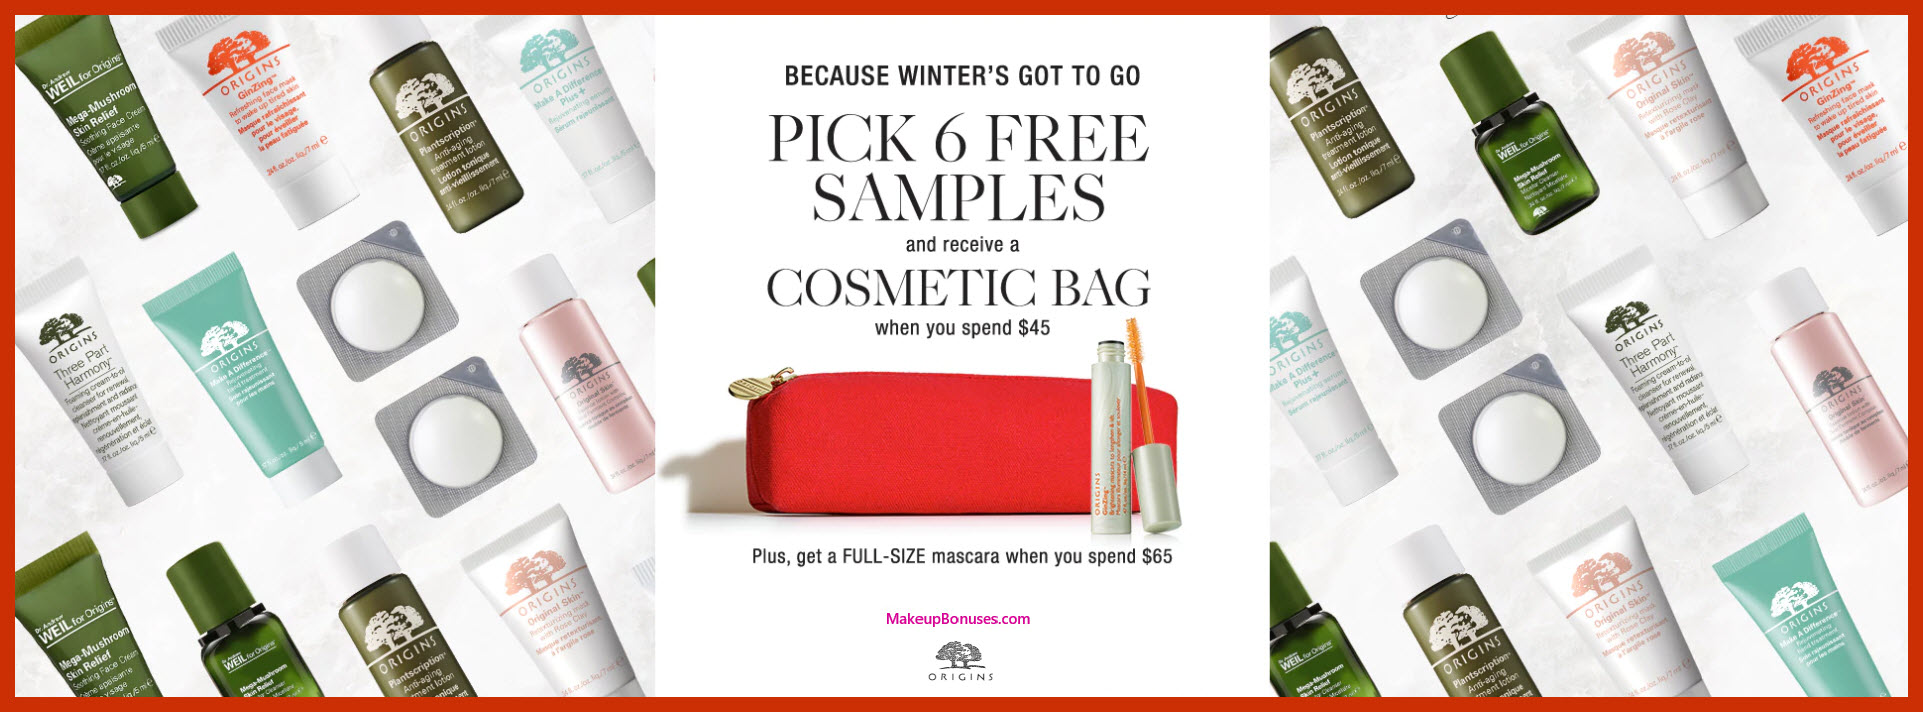 Receive your choice of 7-pc gift with $45 Origins purchase